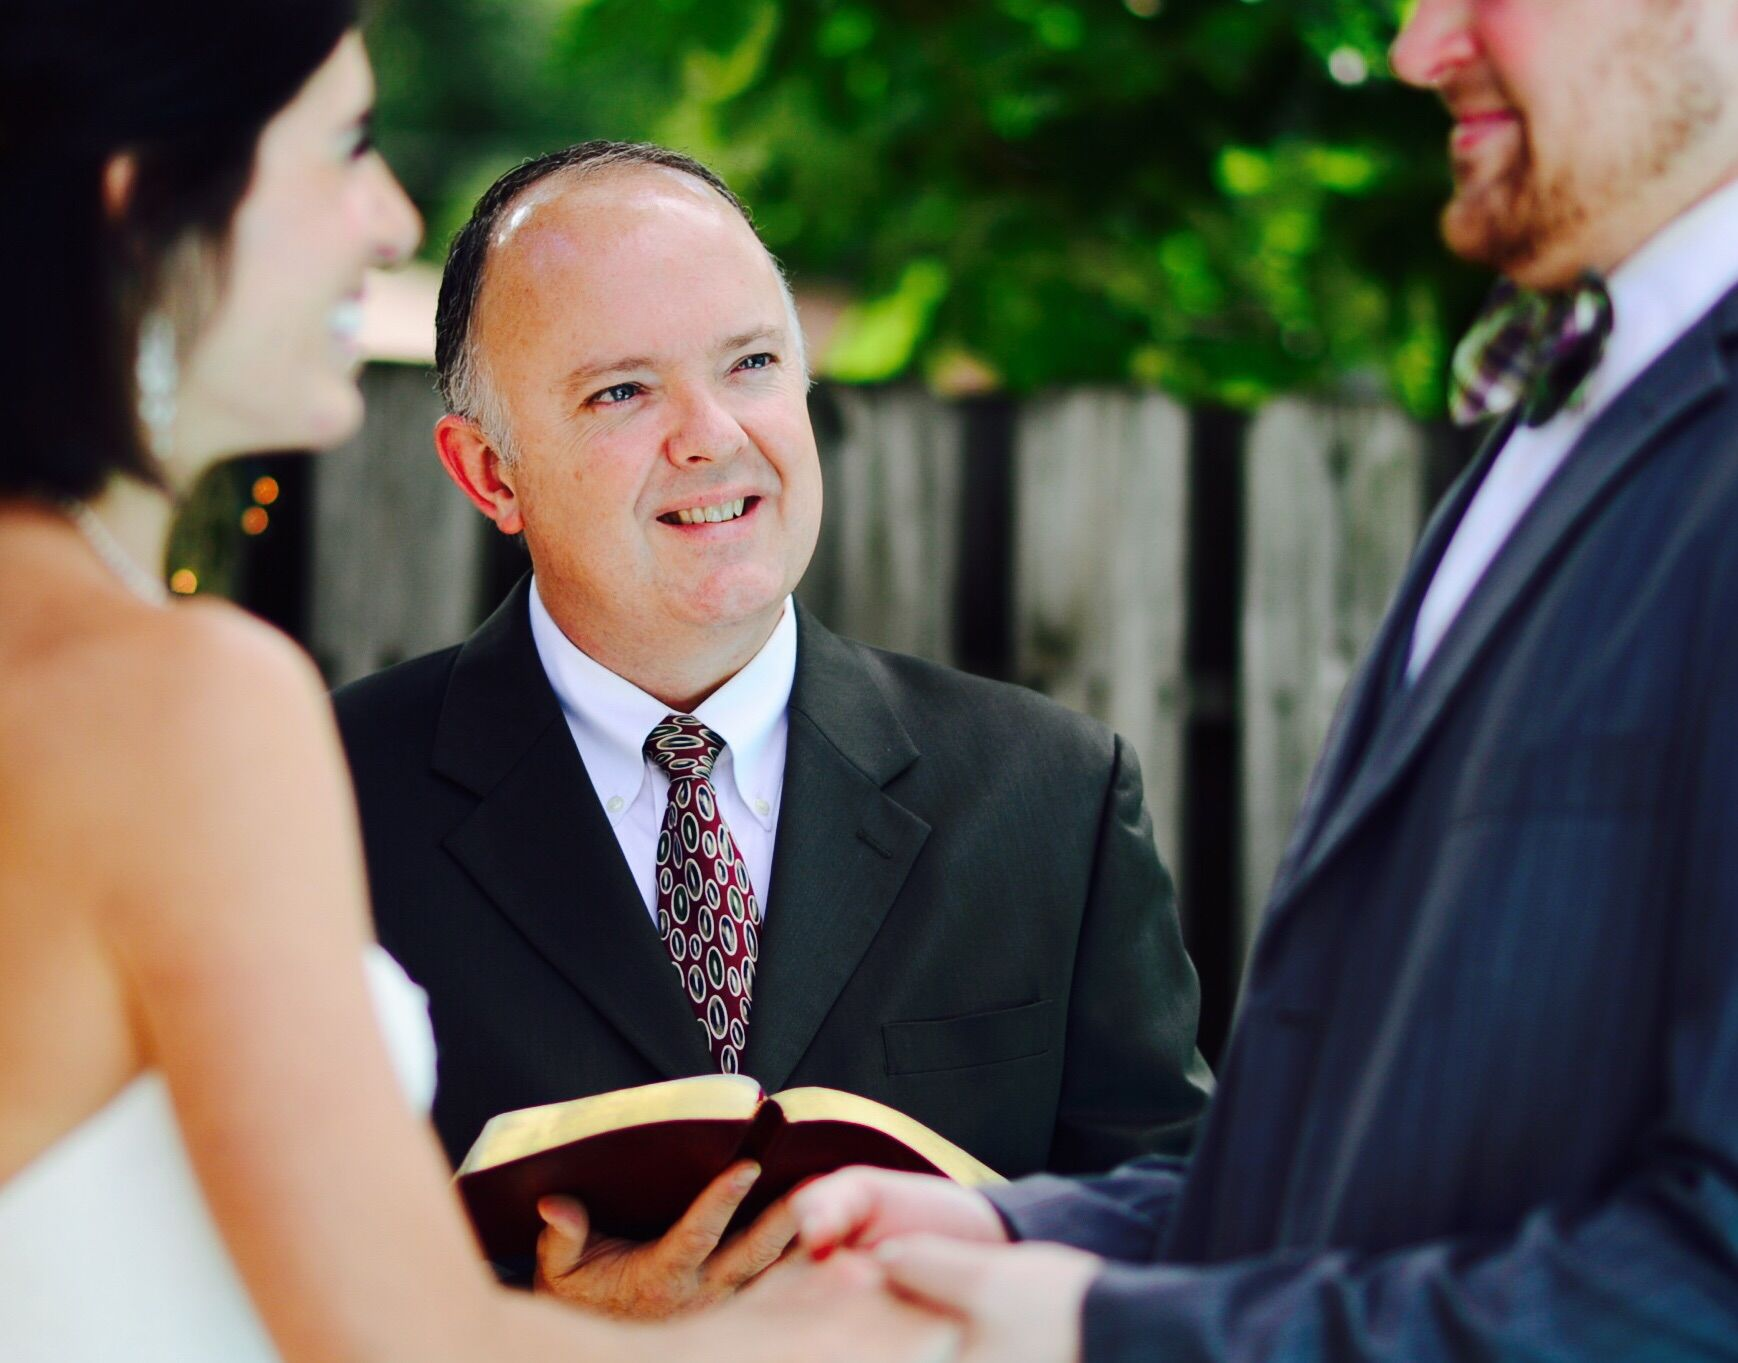 Officiants Premarital Counseling In Indianapolis IN